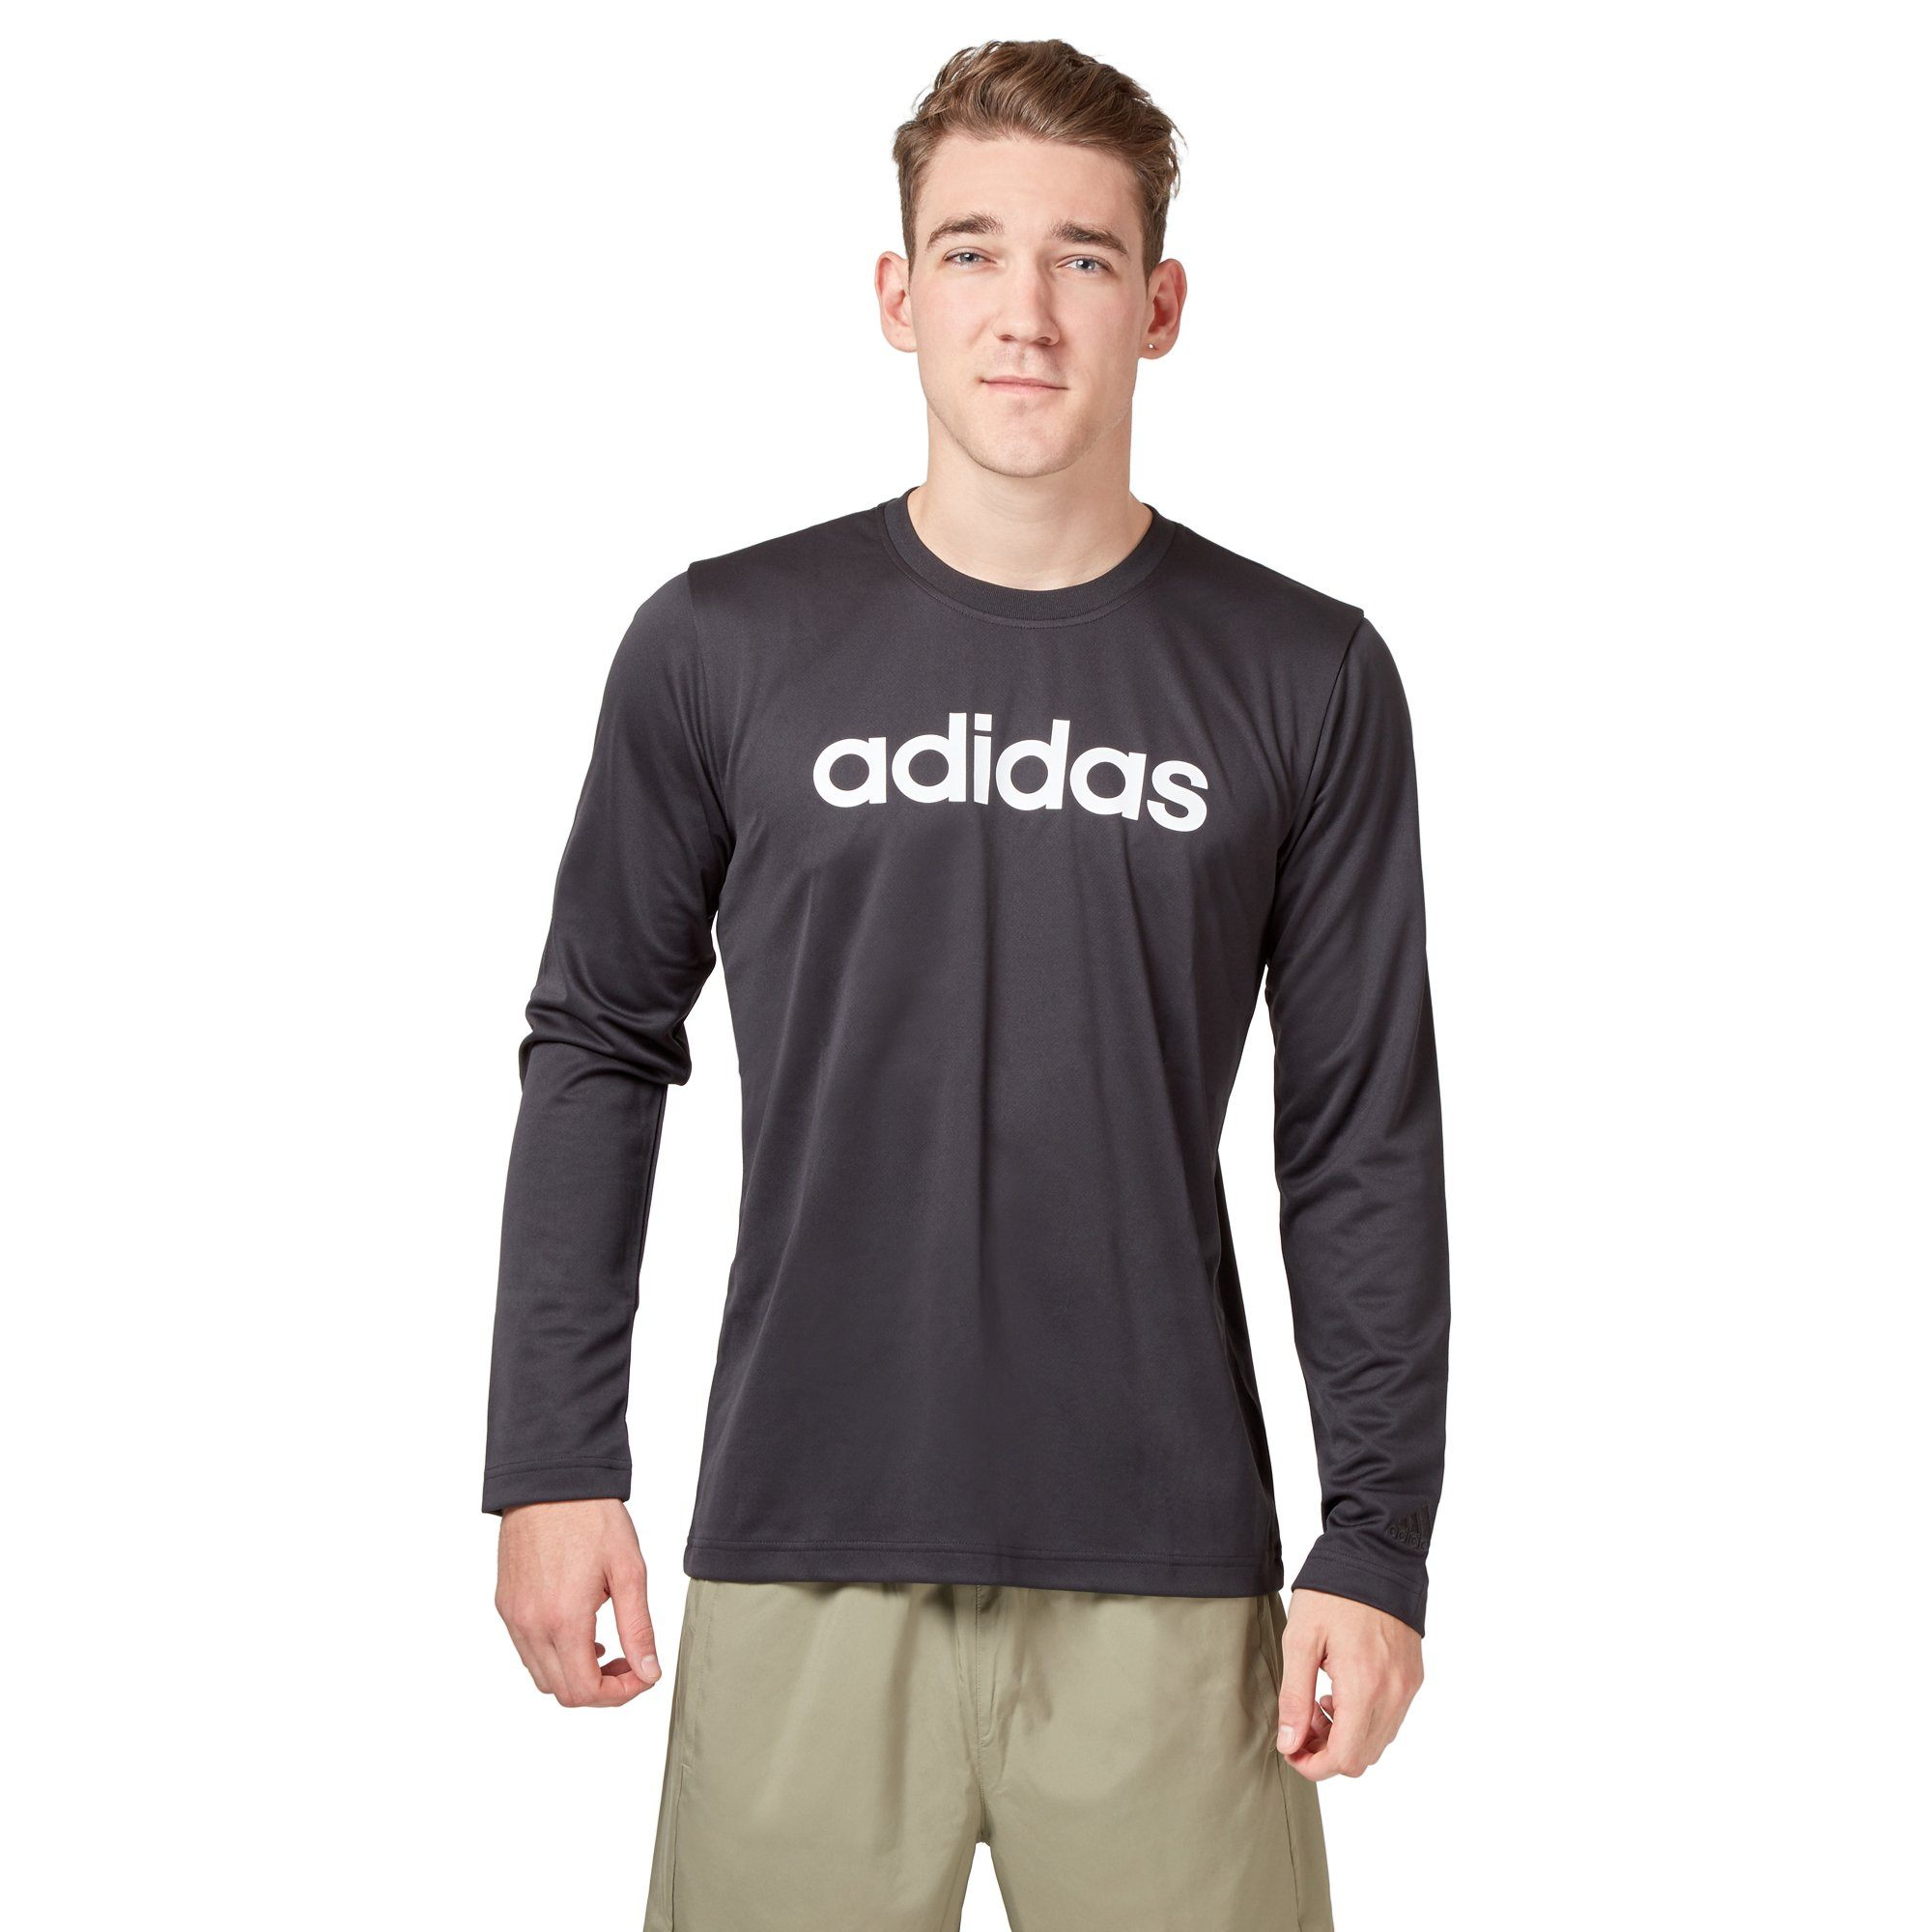 Adidas Men's Logo Long Sleeve Tee - Black SportsPower Geelong  (2012420145211)